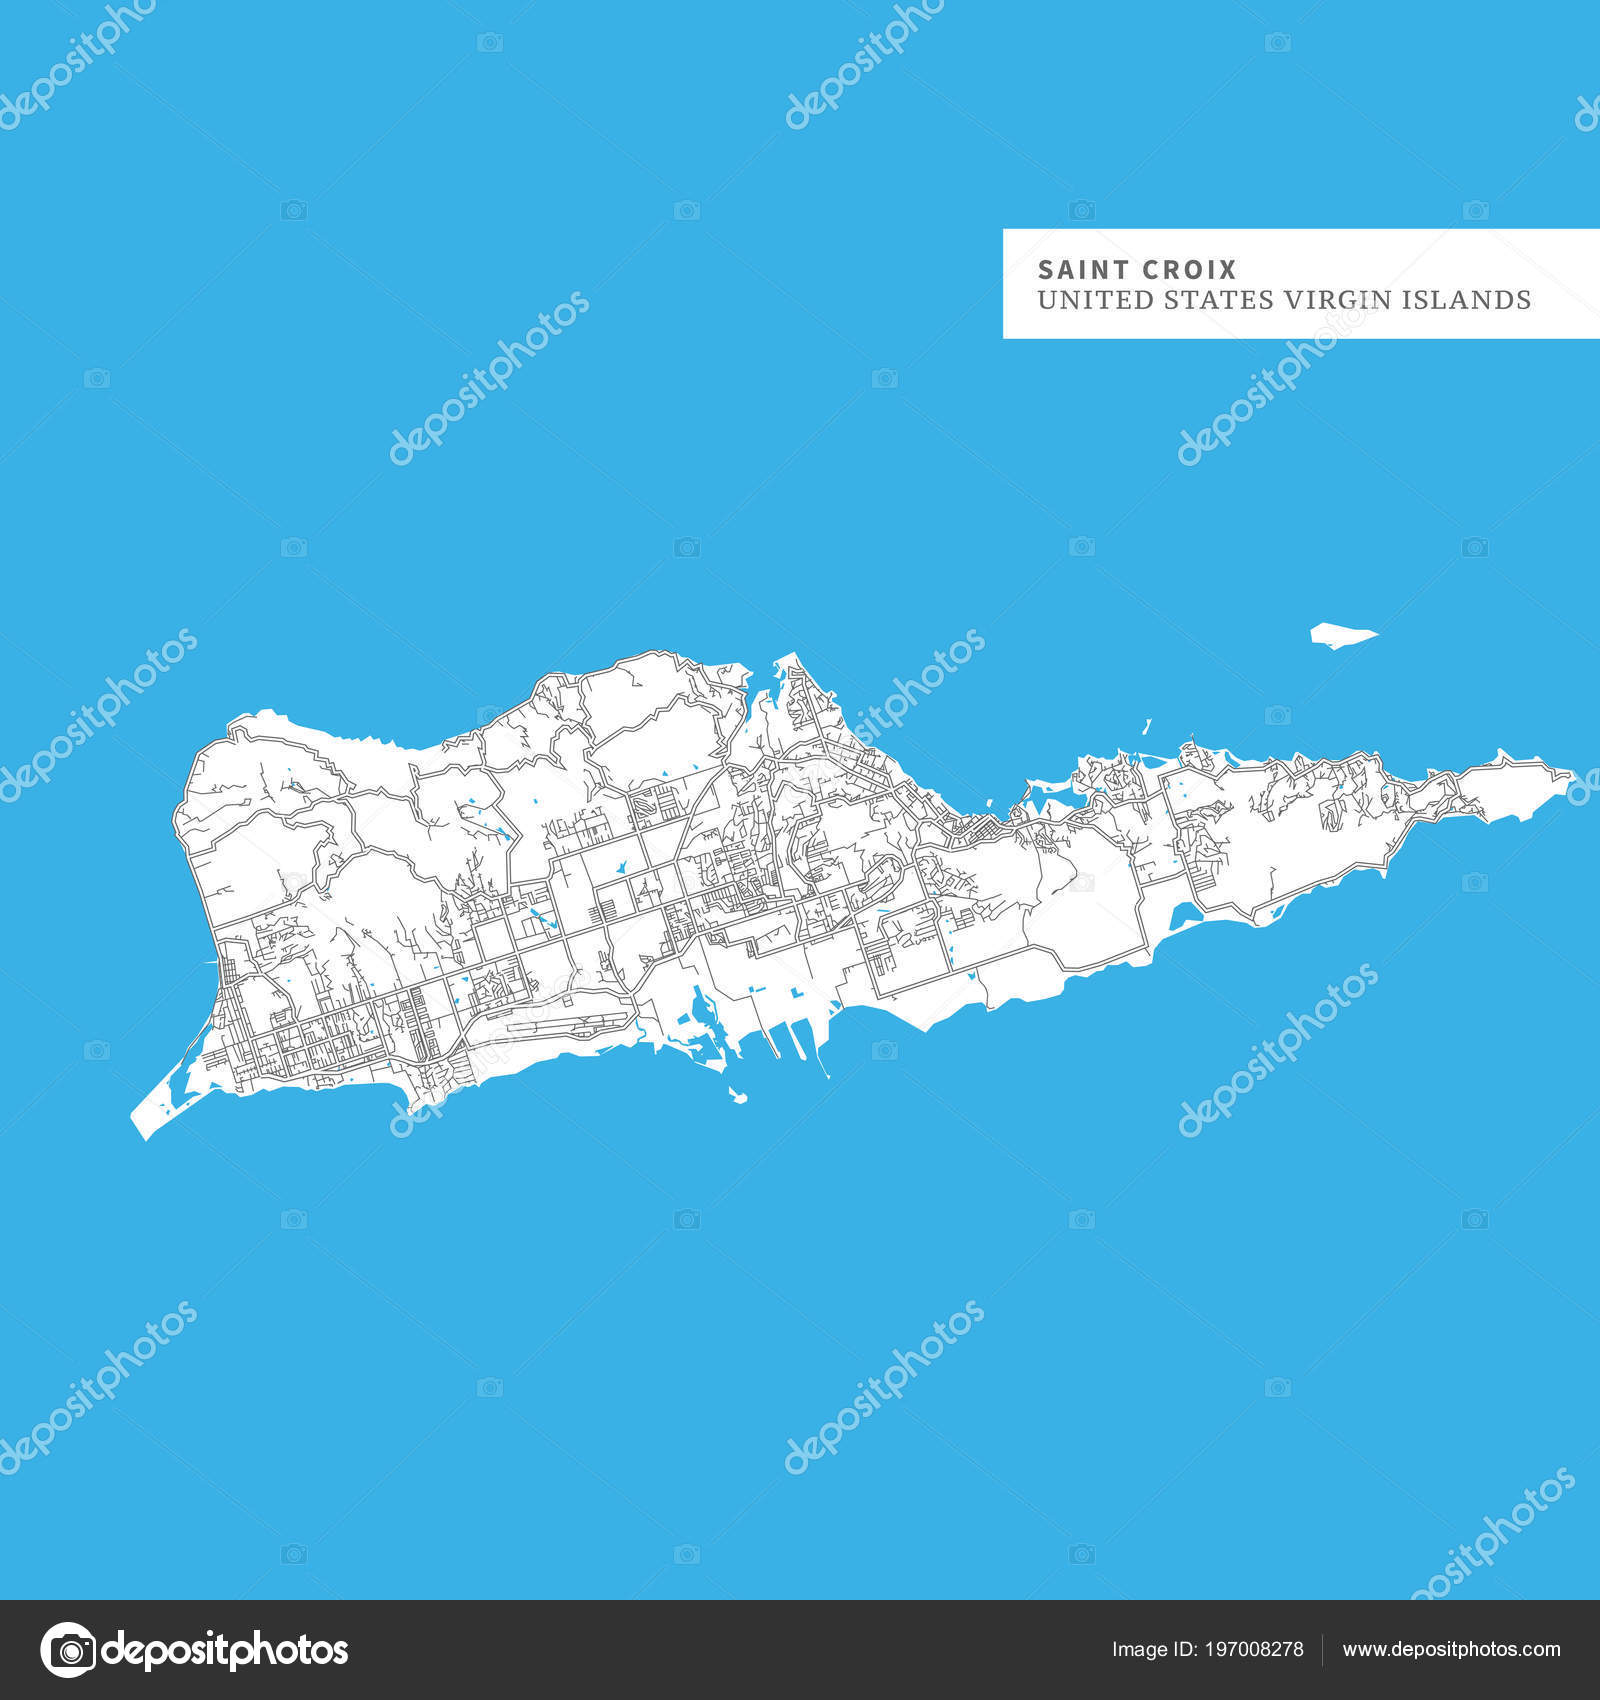 Map Saint Croix Island United States Virgin Islands Contains ...